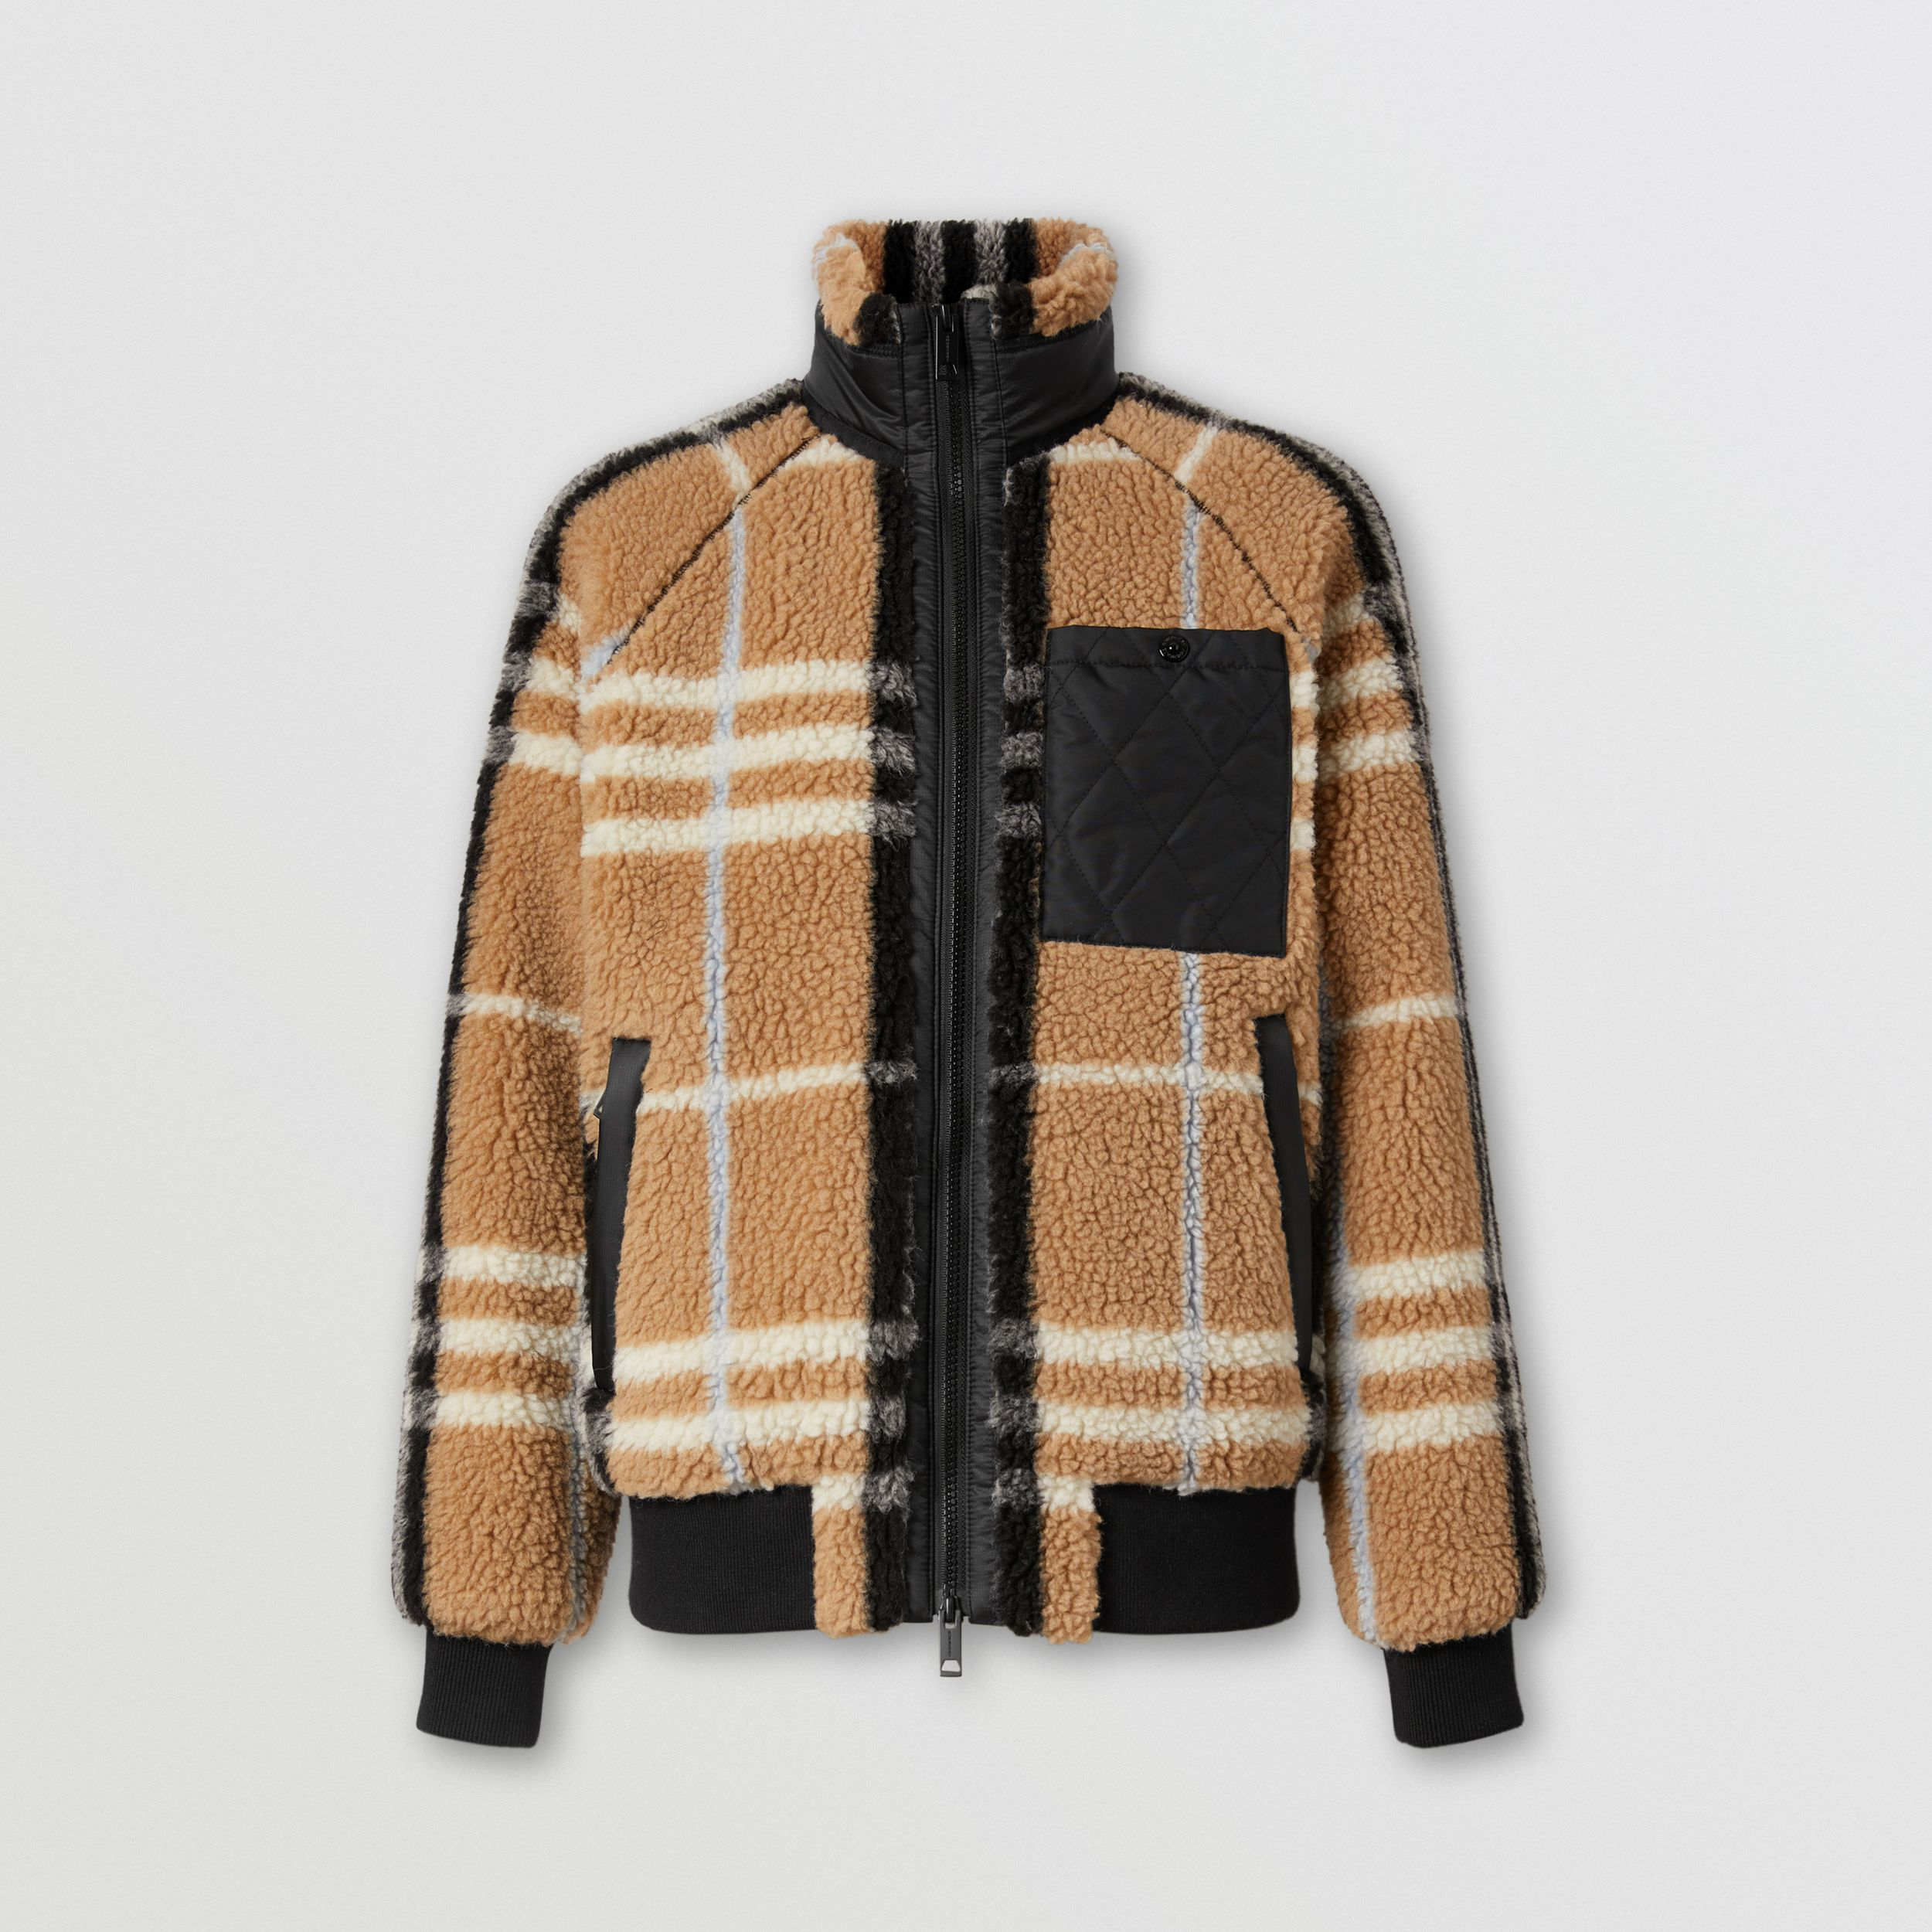 Diamond Quilted Panel Check Fleece Jacquard Jacket in Pale Blue - Women | Burberry - 4